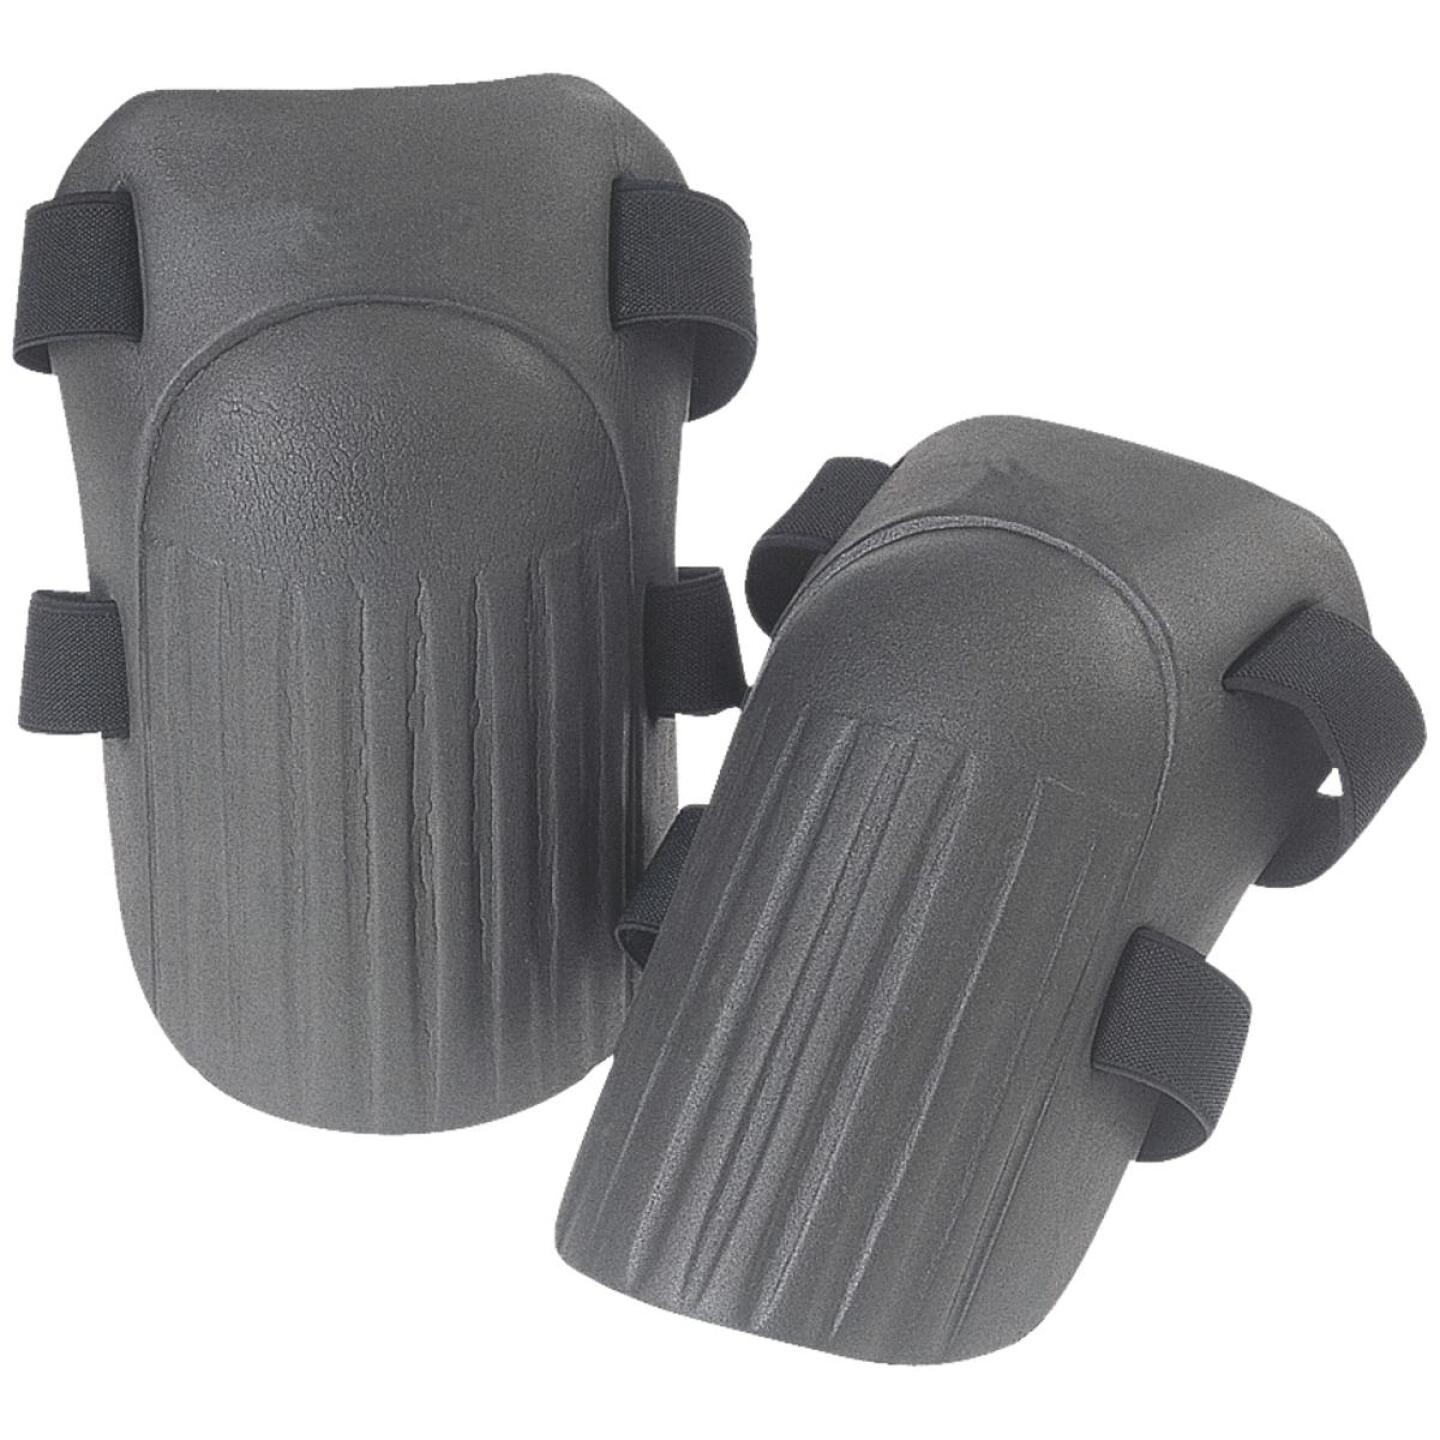 CLC Molded Durable Foam Kneepads Image 1